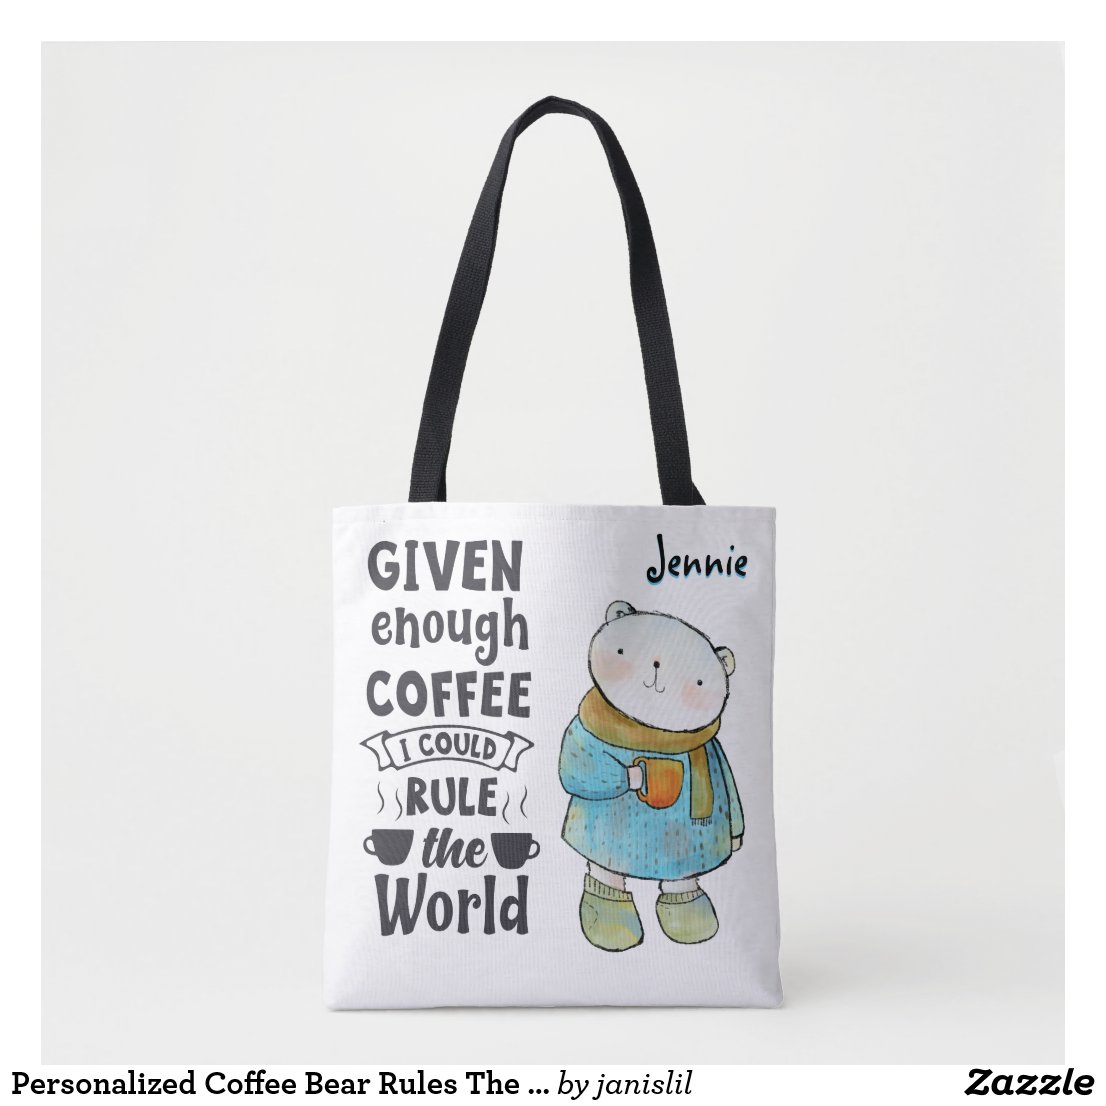 Personalized Coffee Bear Rules The World Tote Bag